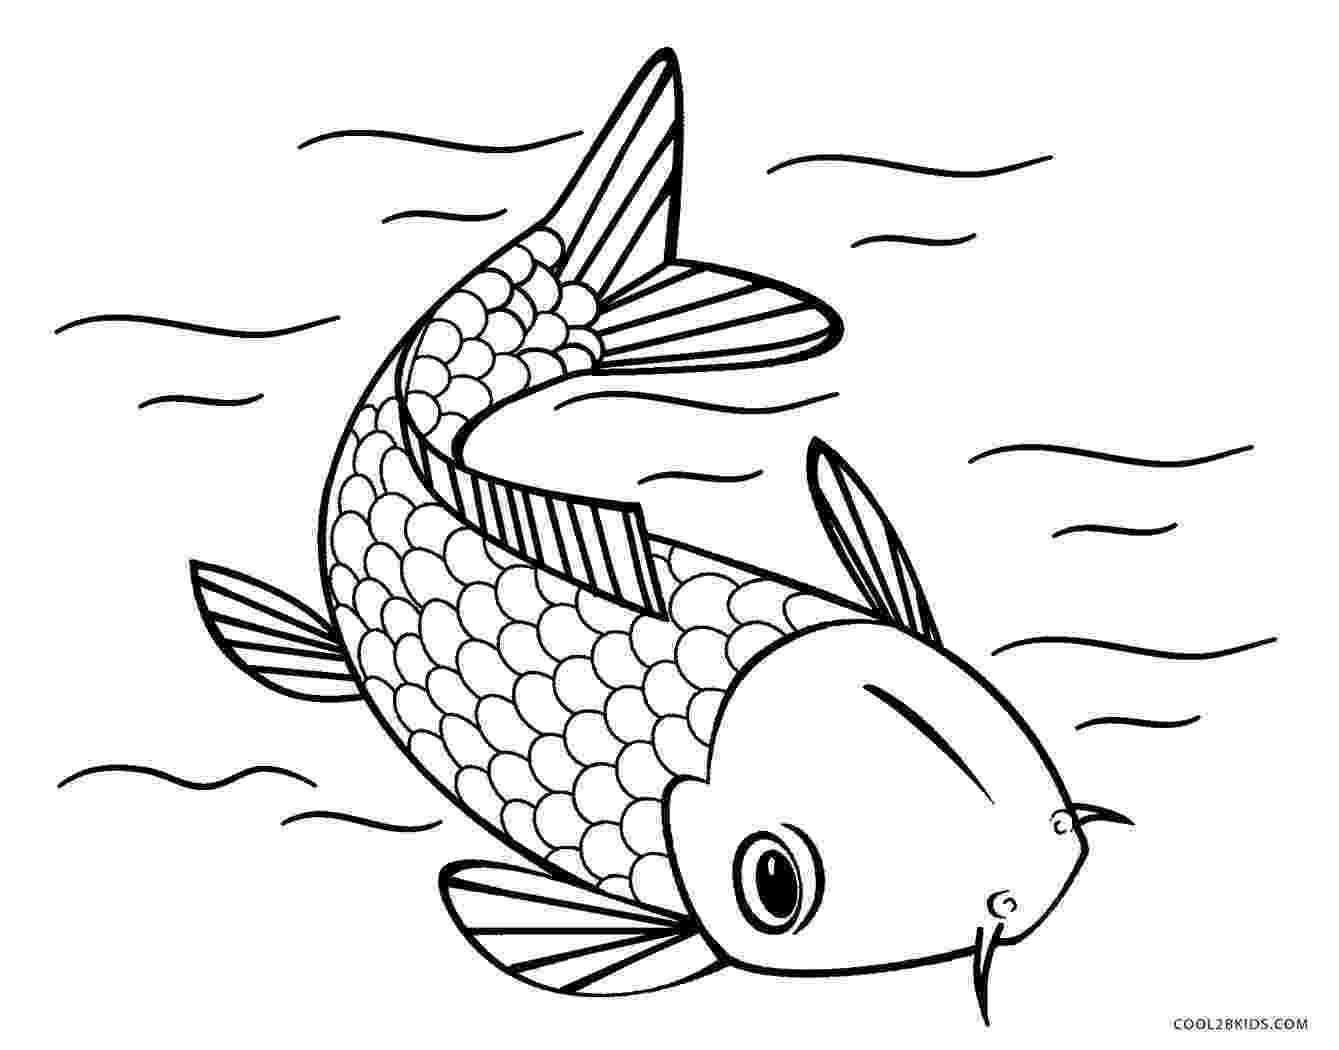 fish coloring page print download cute and educative fish coloring pages coloring fish page